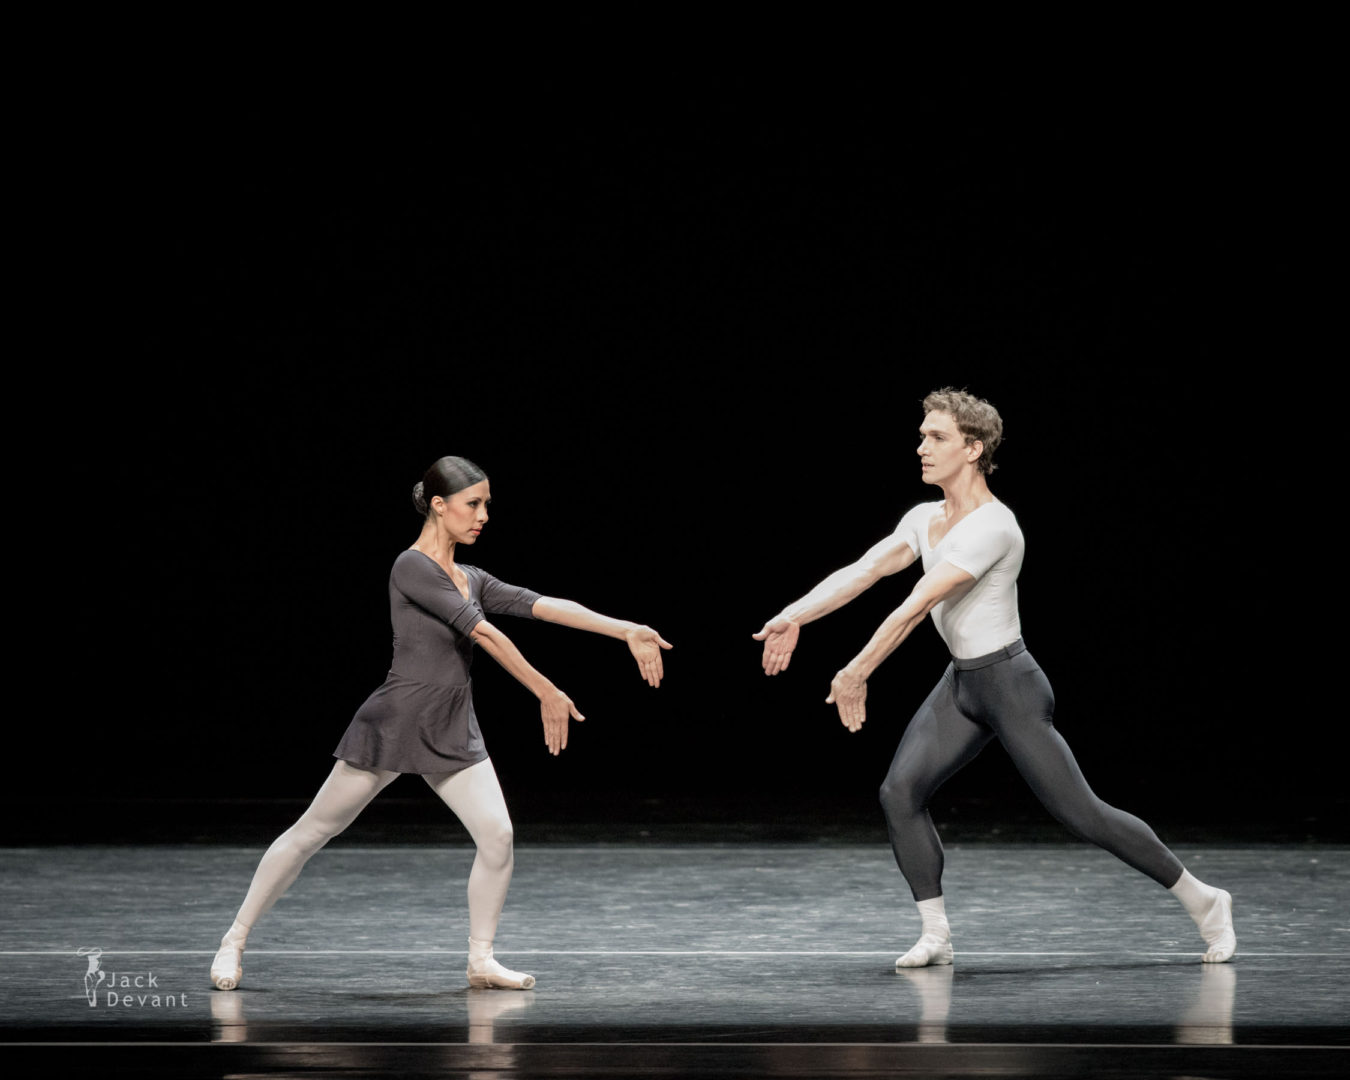 Elisa Carrillo Cabrera and Mikhail Kaniskin in Ballet 102